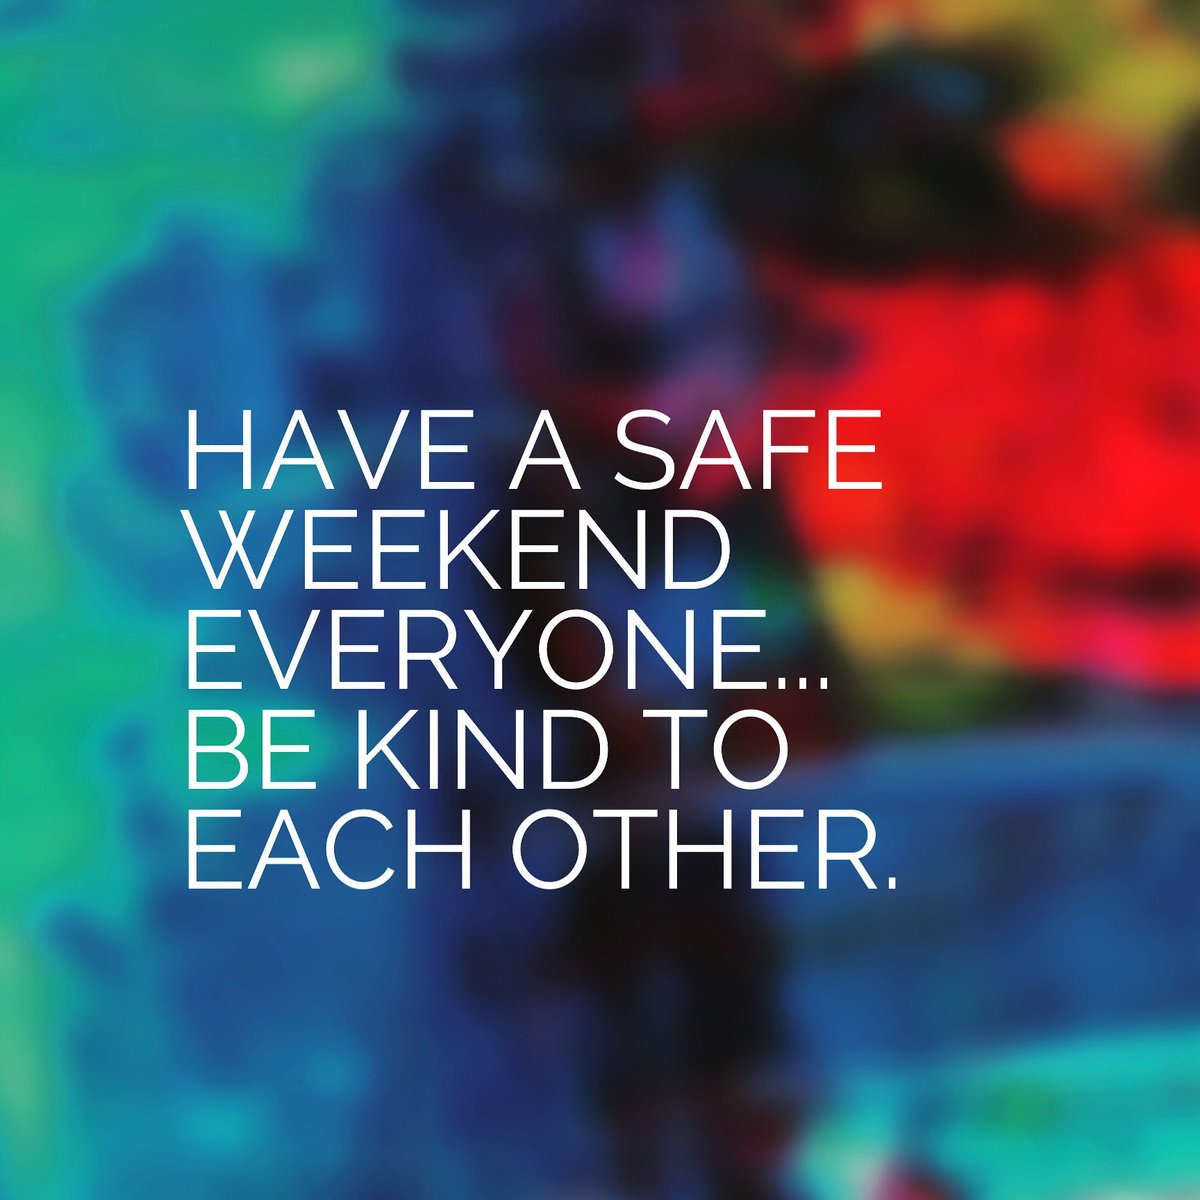 "Vacen Taylor on Twitter: ""Have a safe weekend everyone... be kind ..."